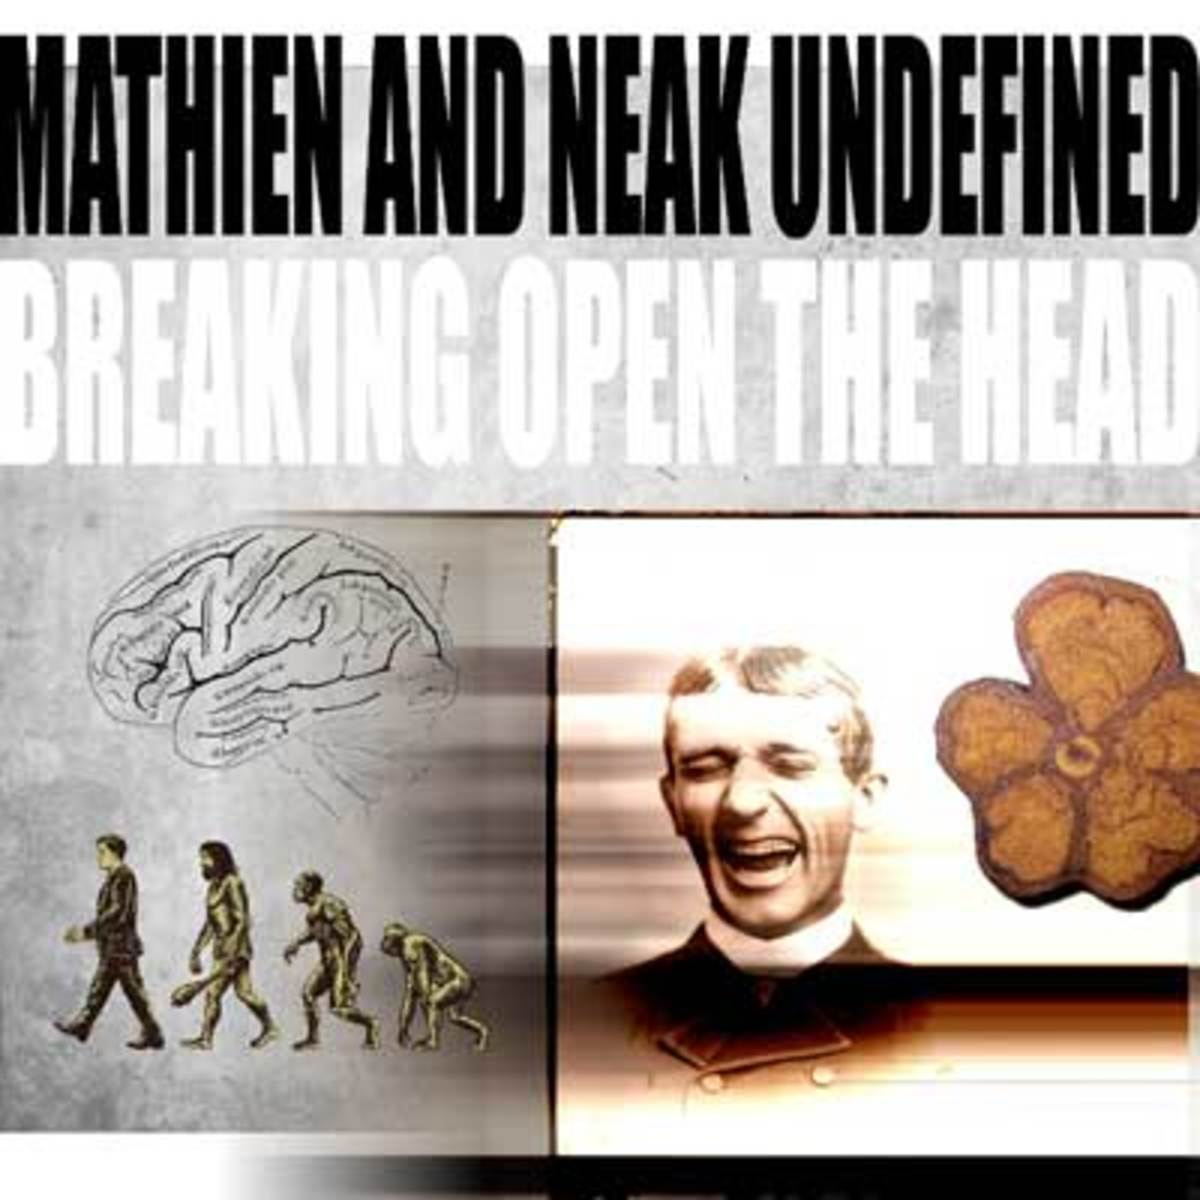 mathienneak-breakingopen.jpg